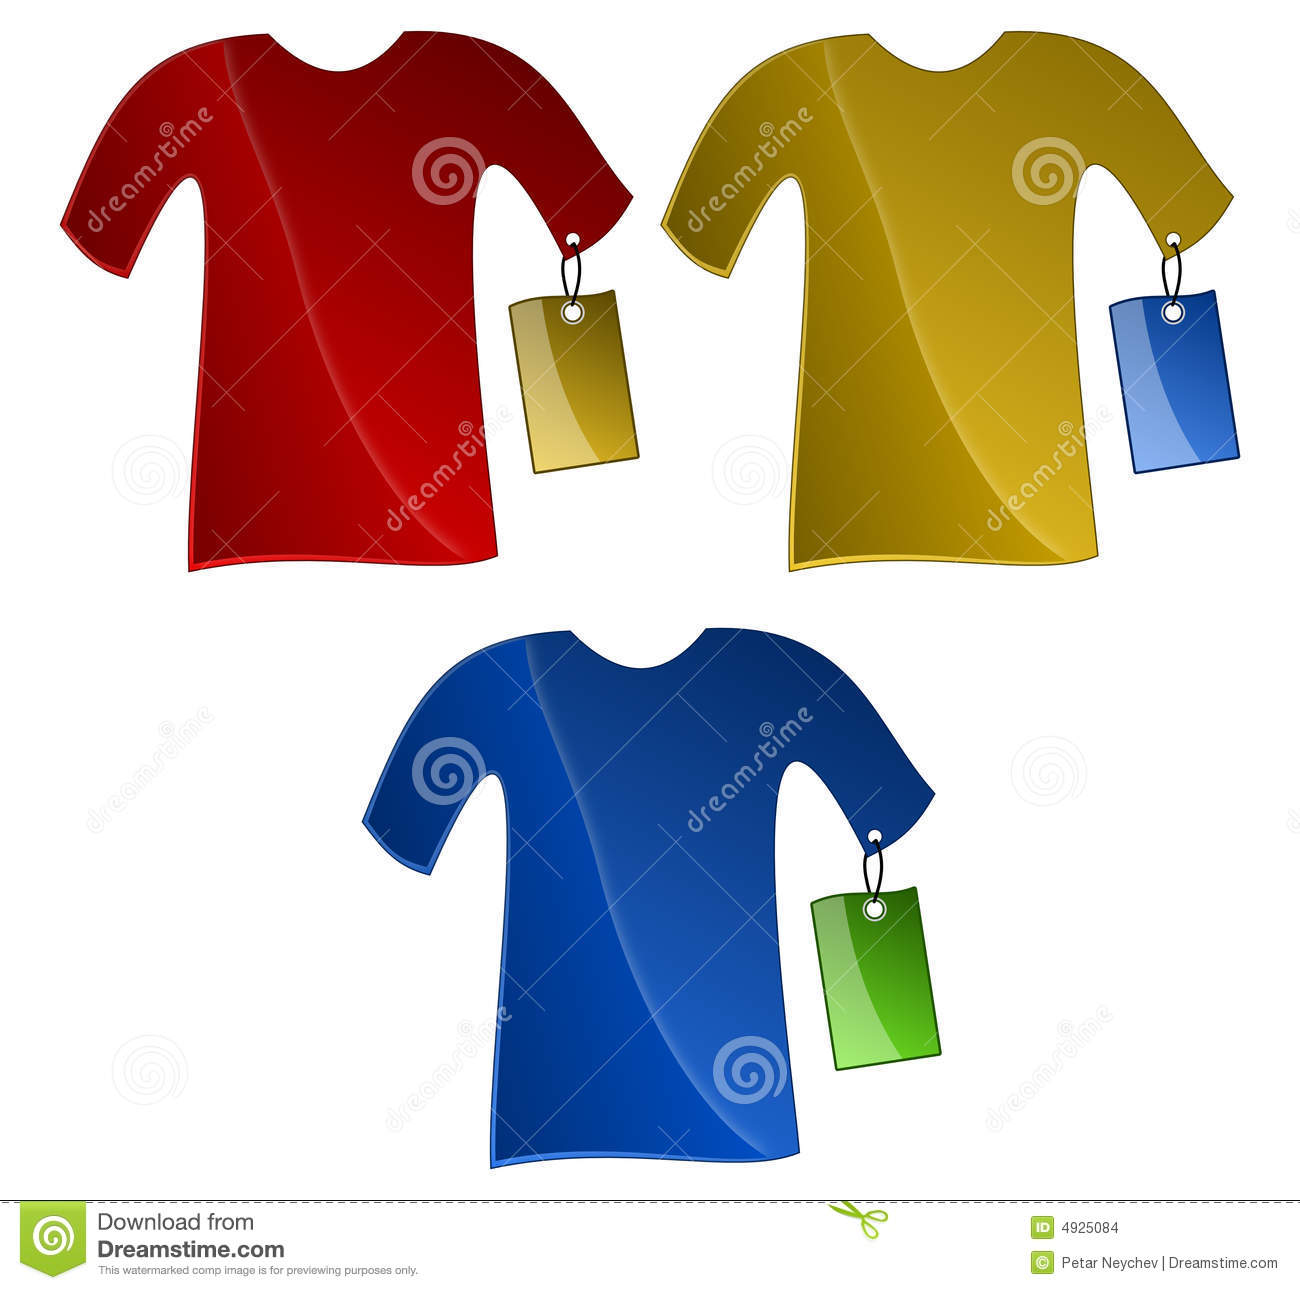 T-Shirts With Price Tags Stock Images - Image: 4925084